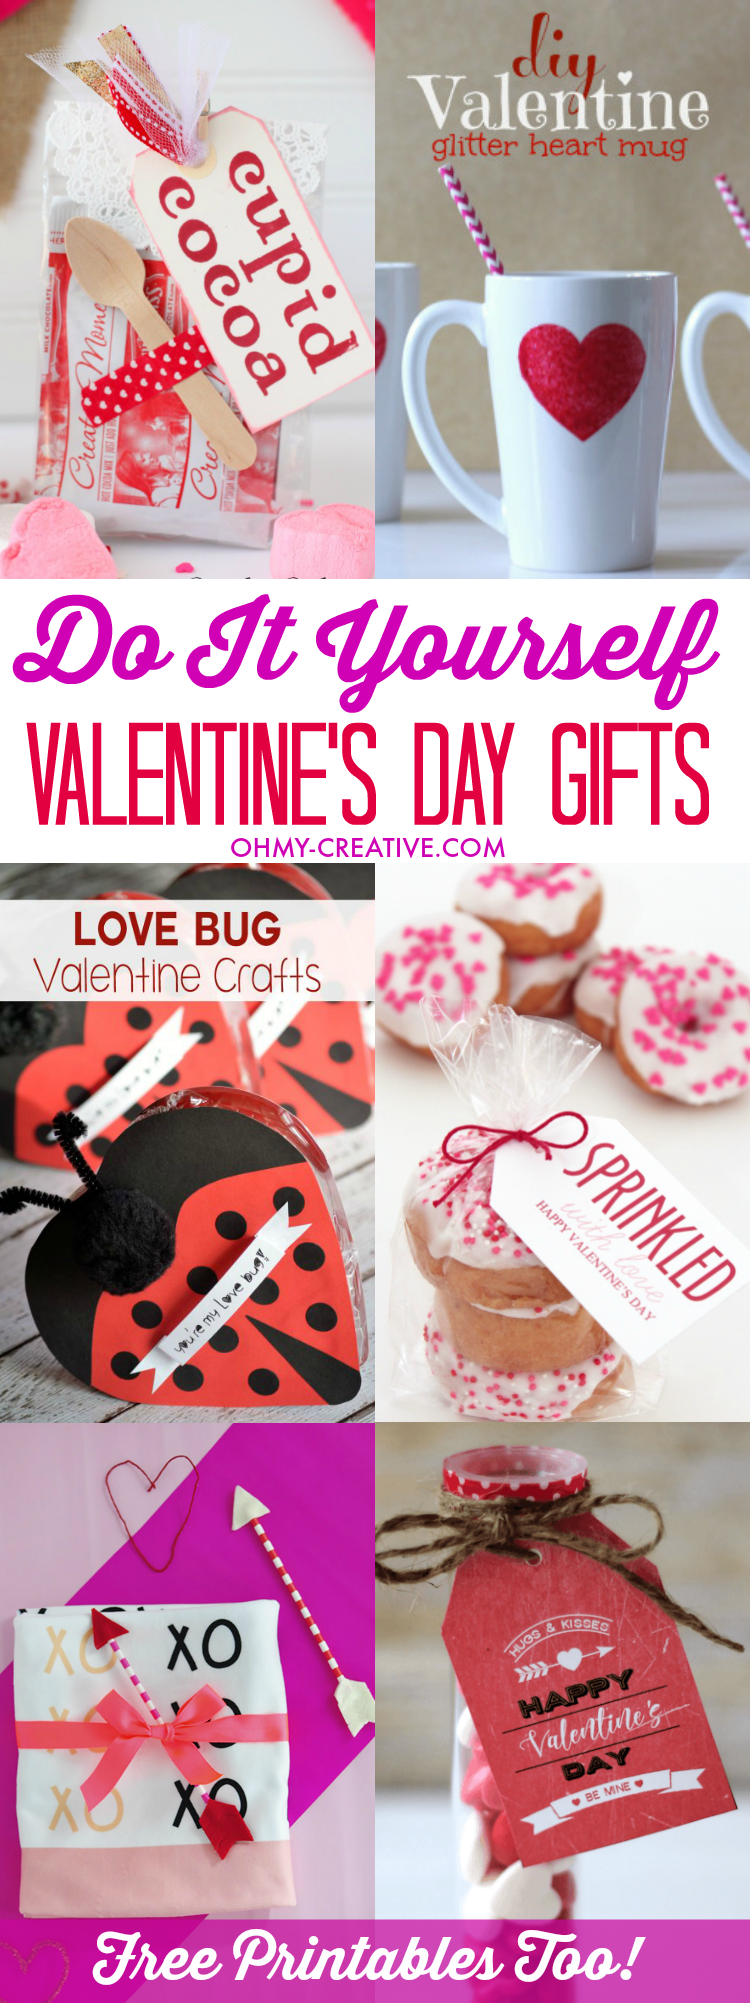 Valentineu0027s Day Is A Great Holiday To Make Something Handmade. Find Here  Great Do It